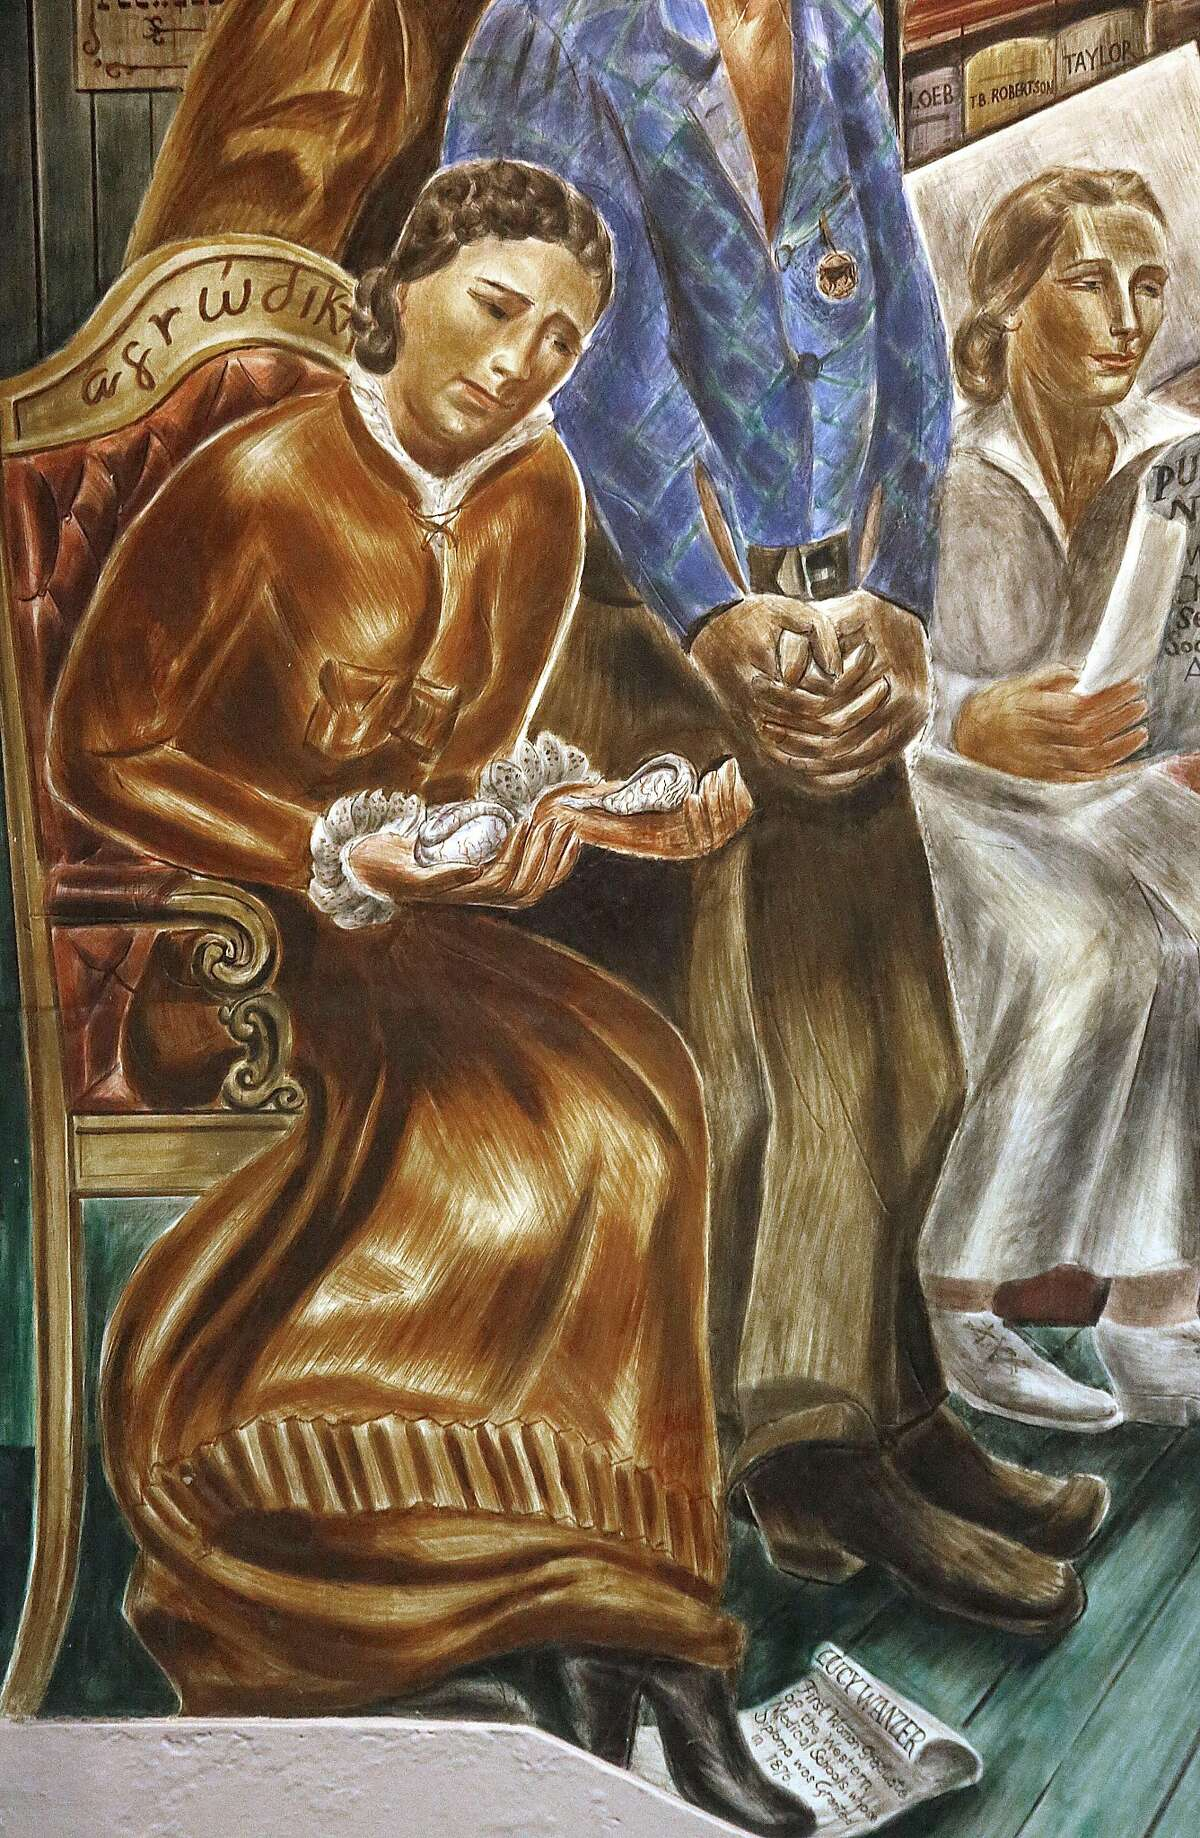 Lucy Wanzer is in a mural painted by artist Bernard Zakheim seen in Toland Hall at UCSF Parnassus campus in San Francisco, California on Friday, February 27, 2015. Wanzer who graduated from UCSF in 1876, was the first woman graduate in the medical field. Her school application was initially rejected and is seen carrying ovaries in one hand and testis in the other.